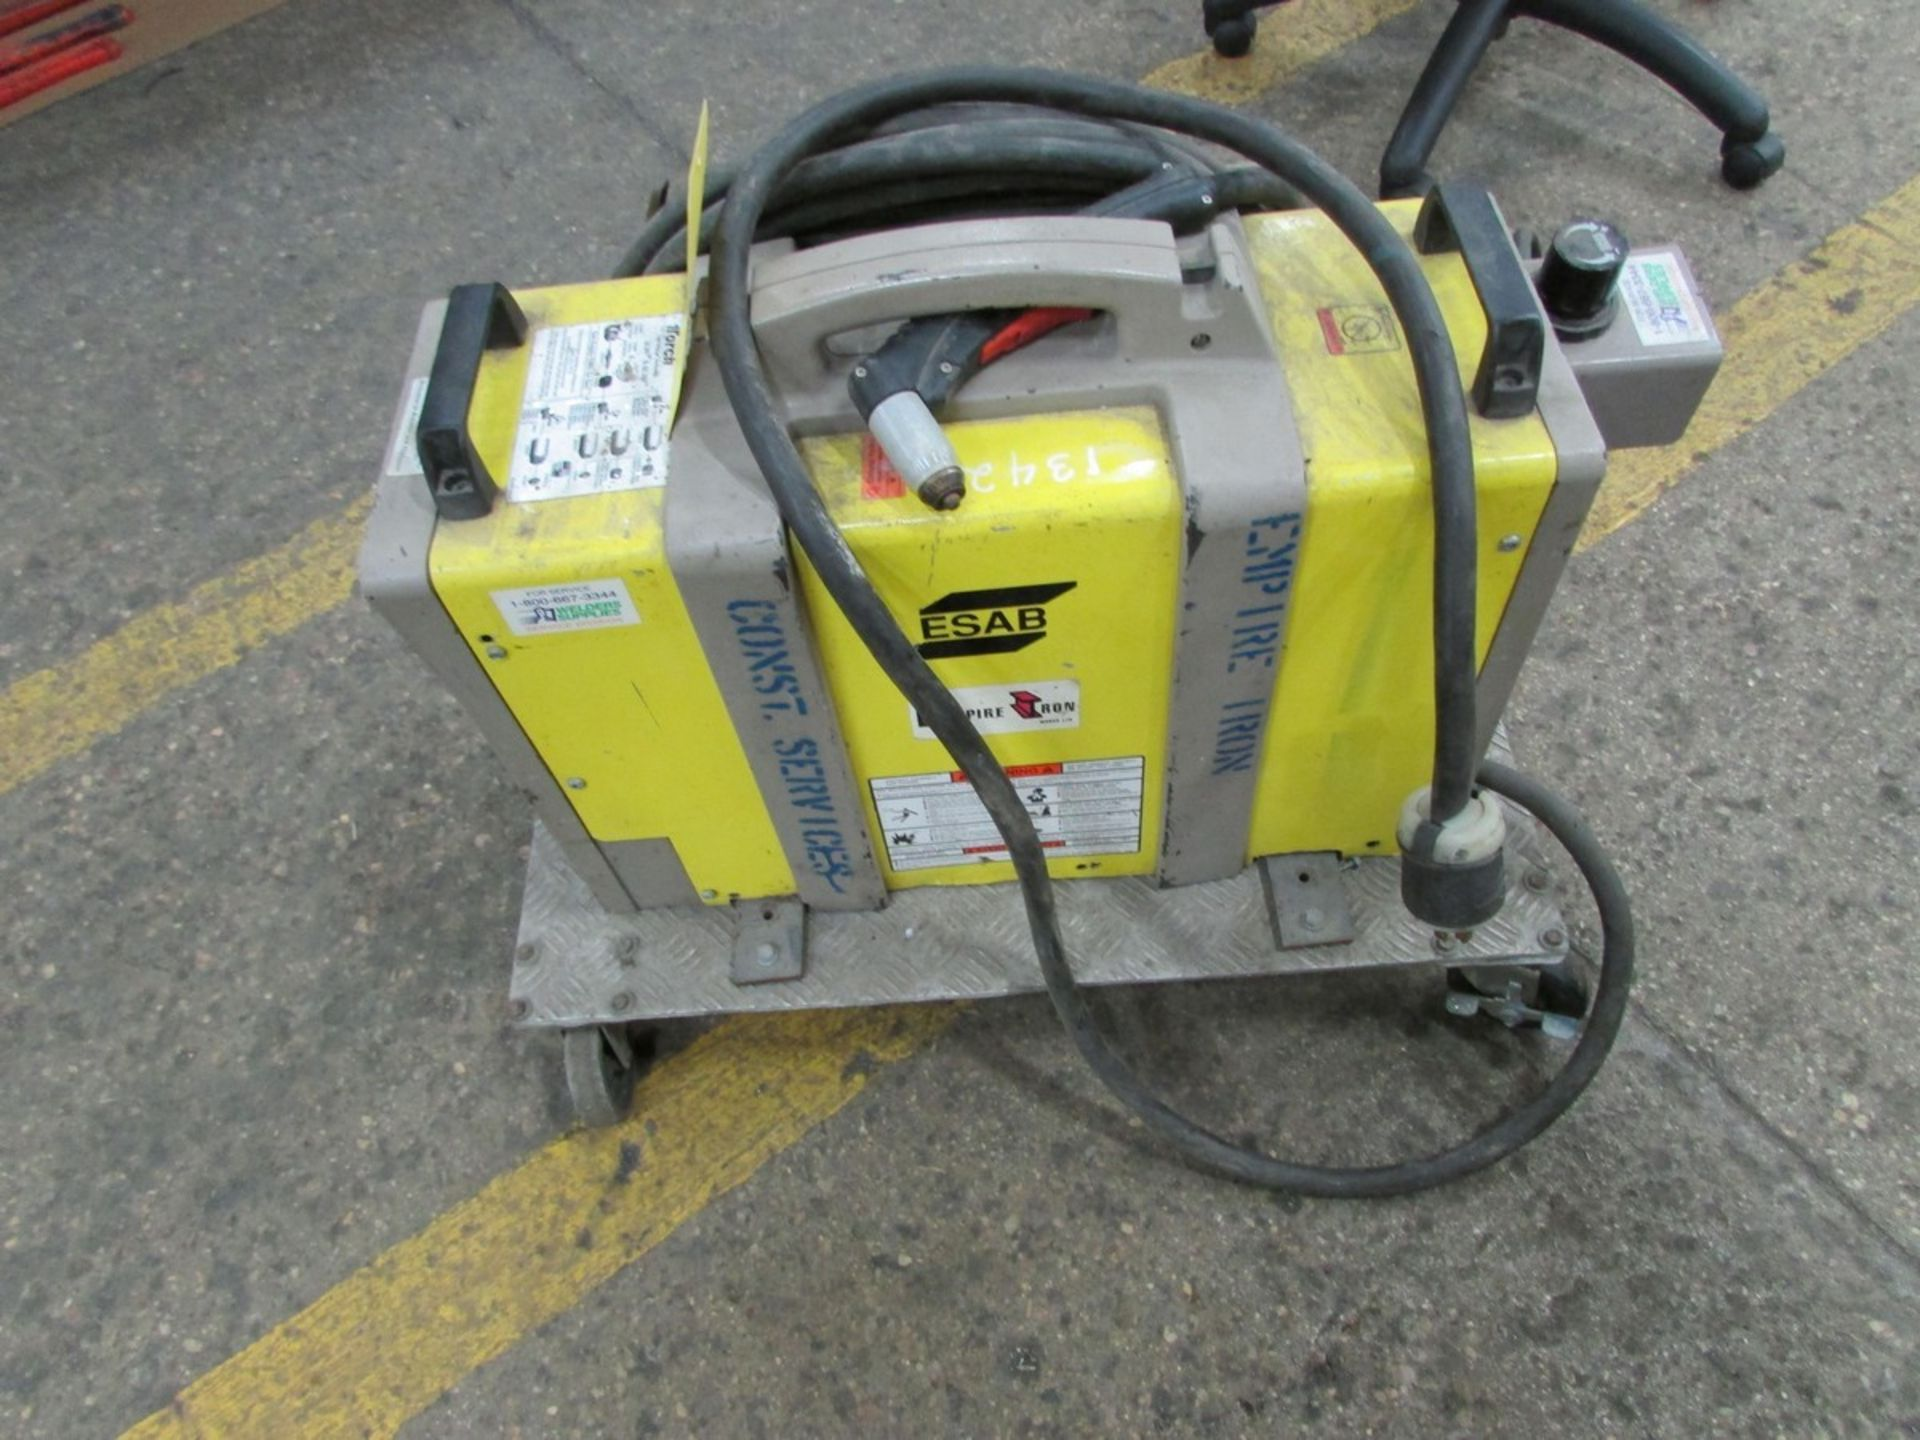 Lot 141 - ESAB suitcase plasma cutter, s/n RC-543010, mounted on small cart